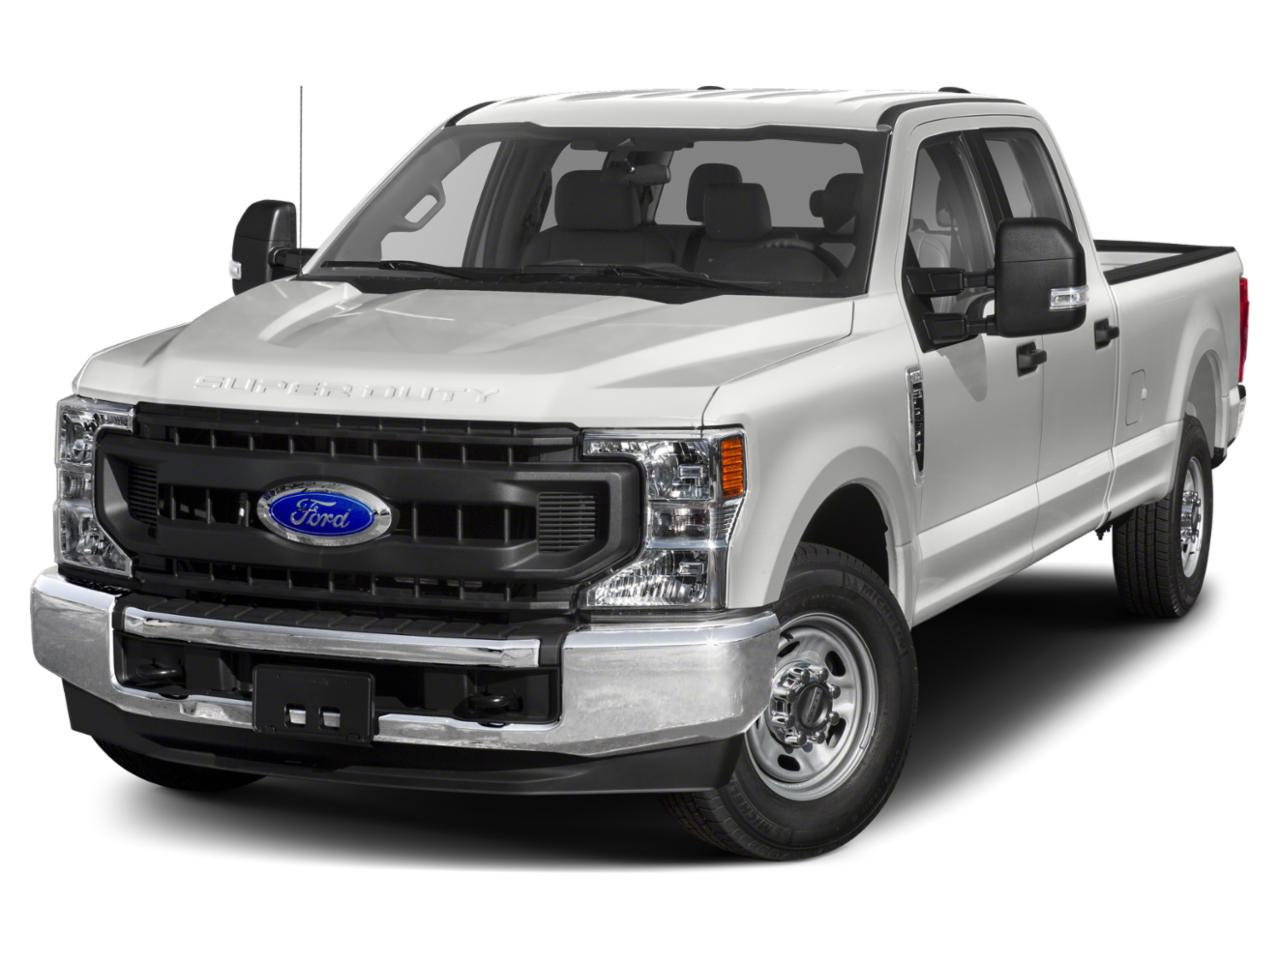 2021 Ford Super Duty F-350 SRW Vehicle Photo in American Fork, UT 84003